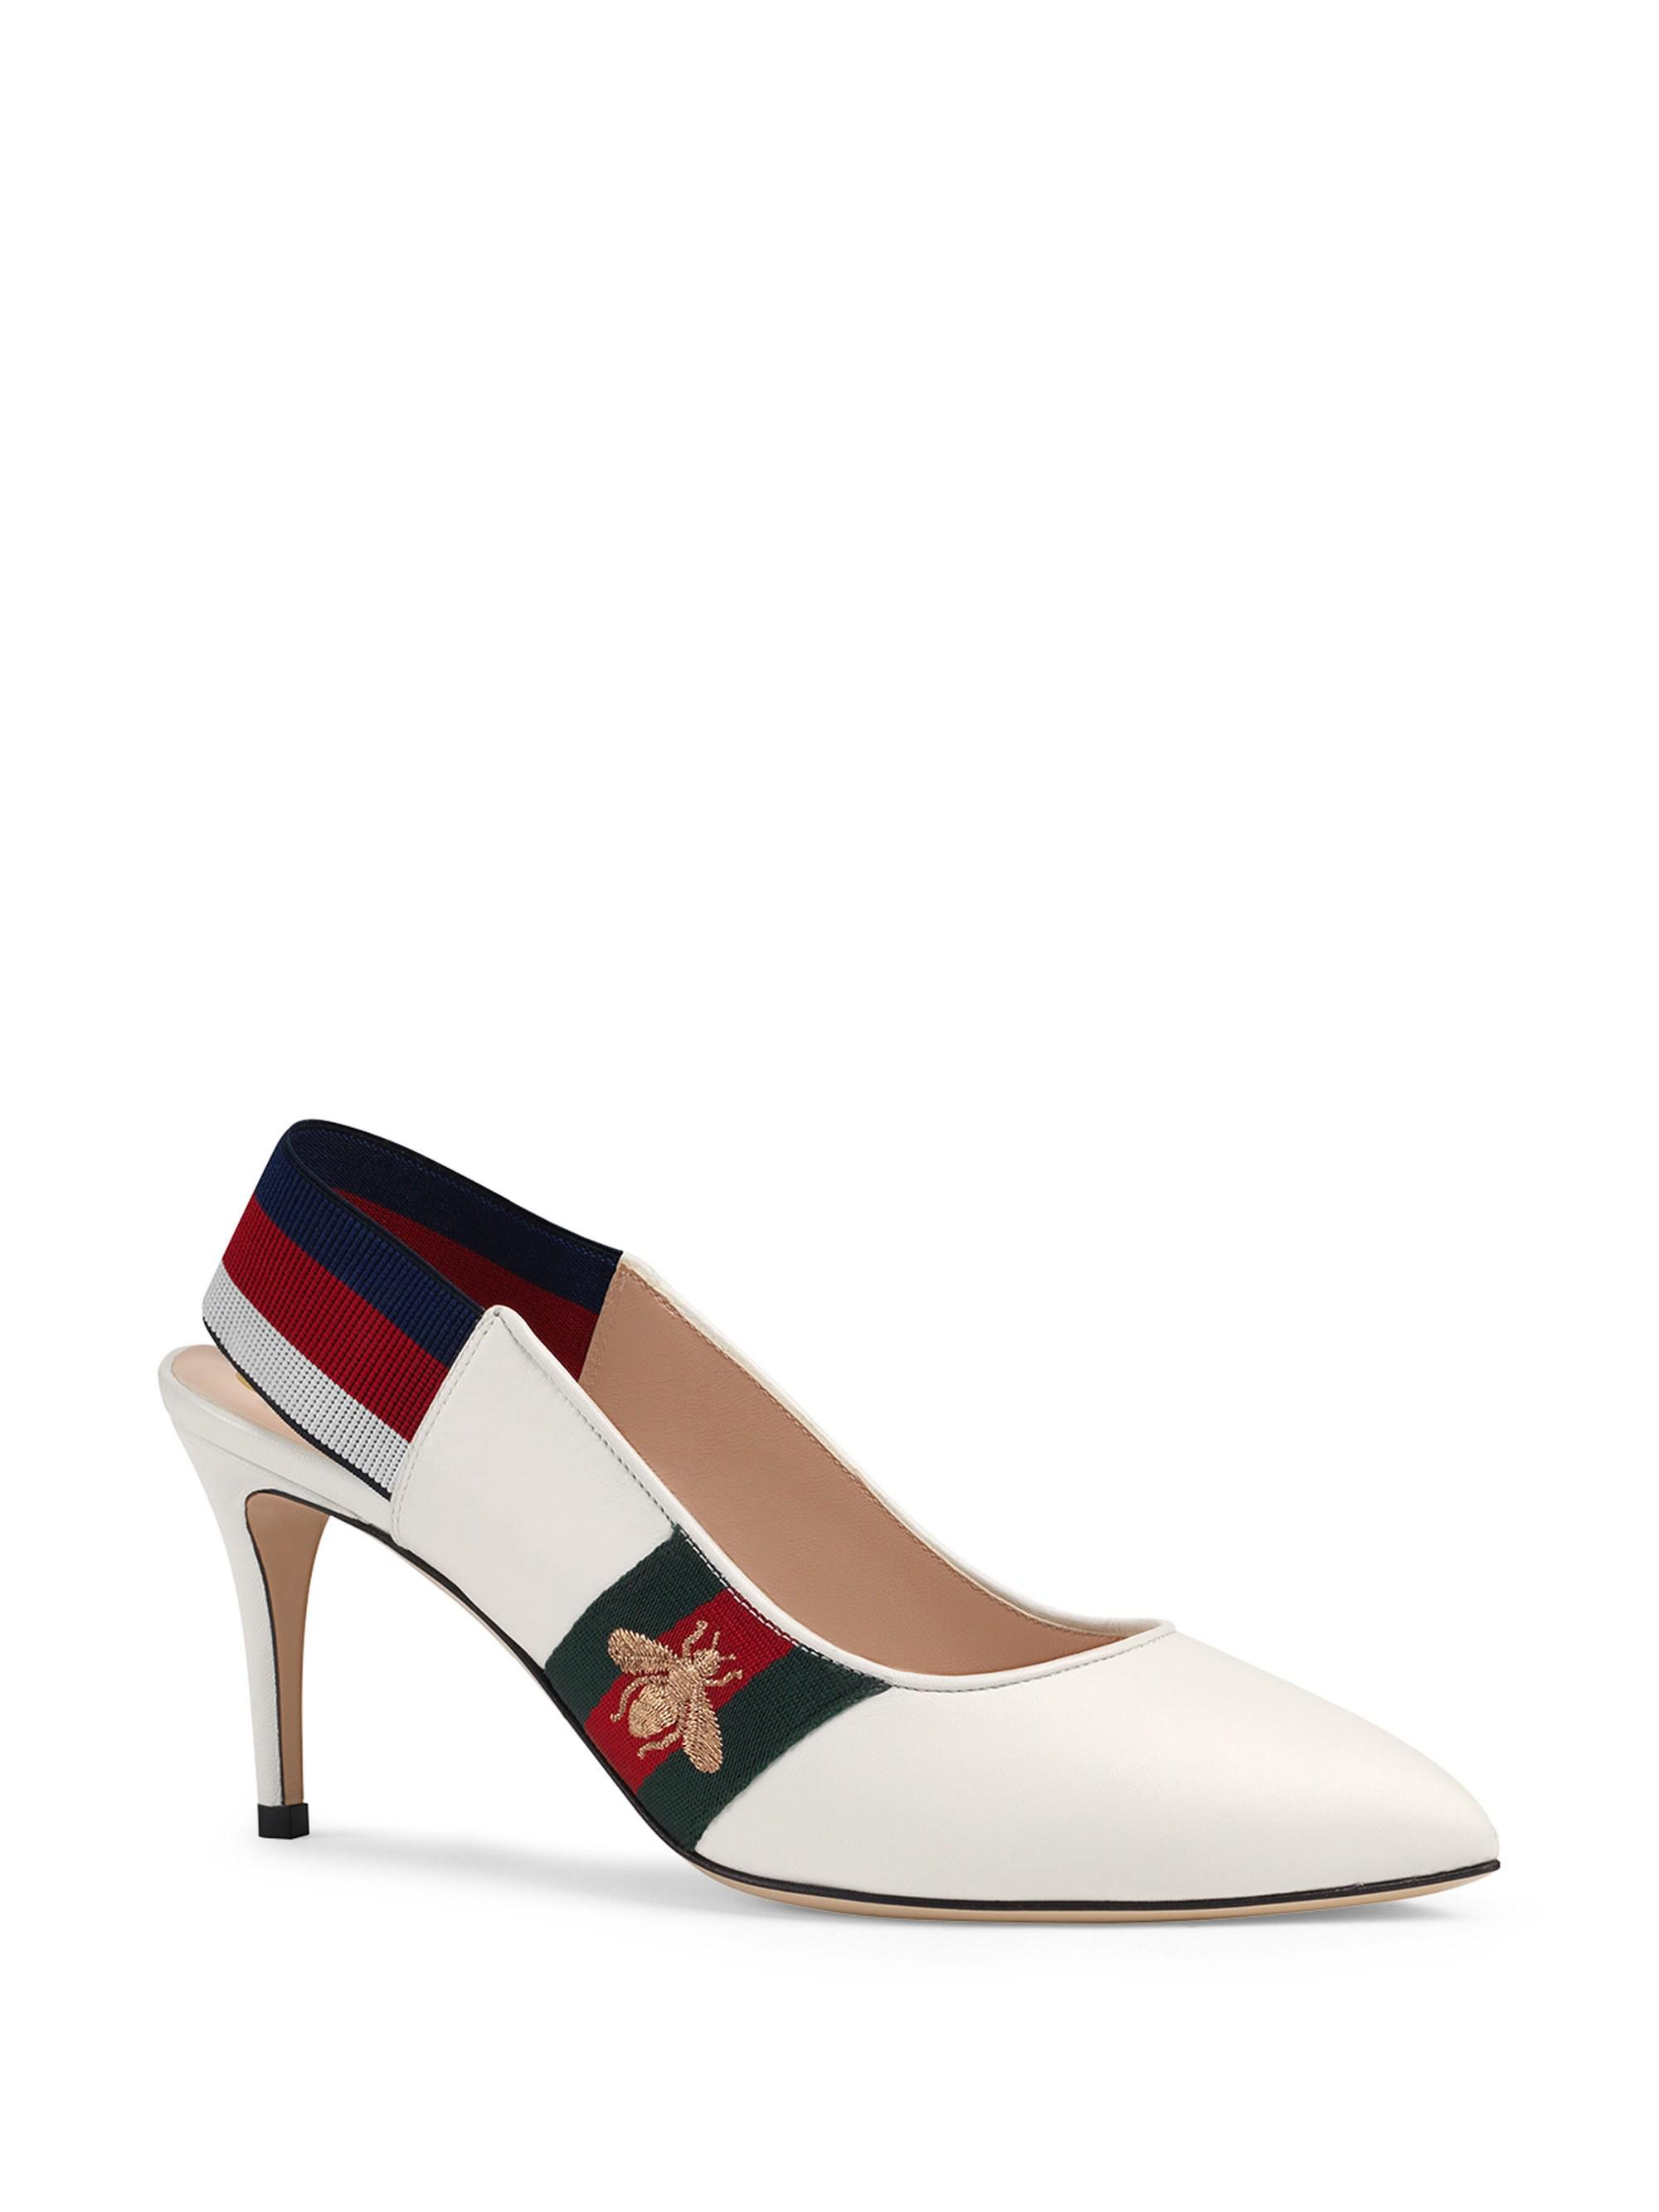 14b4cd2ef Gucci Leather Web Mid-heel Slingback Pumps in White - Save 12% - Lyst